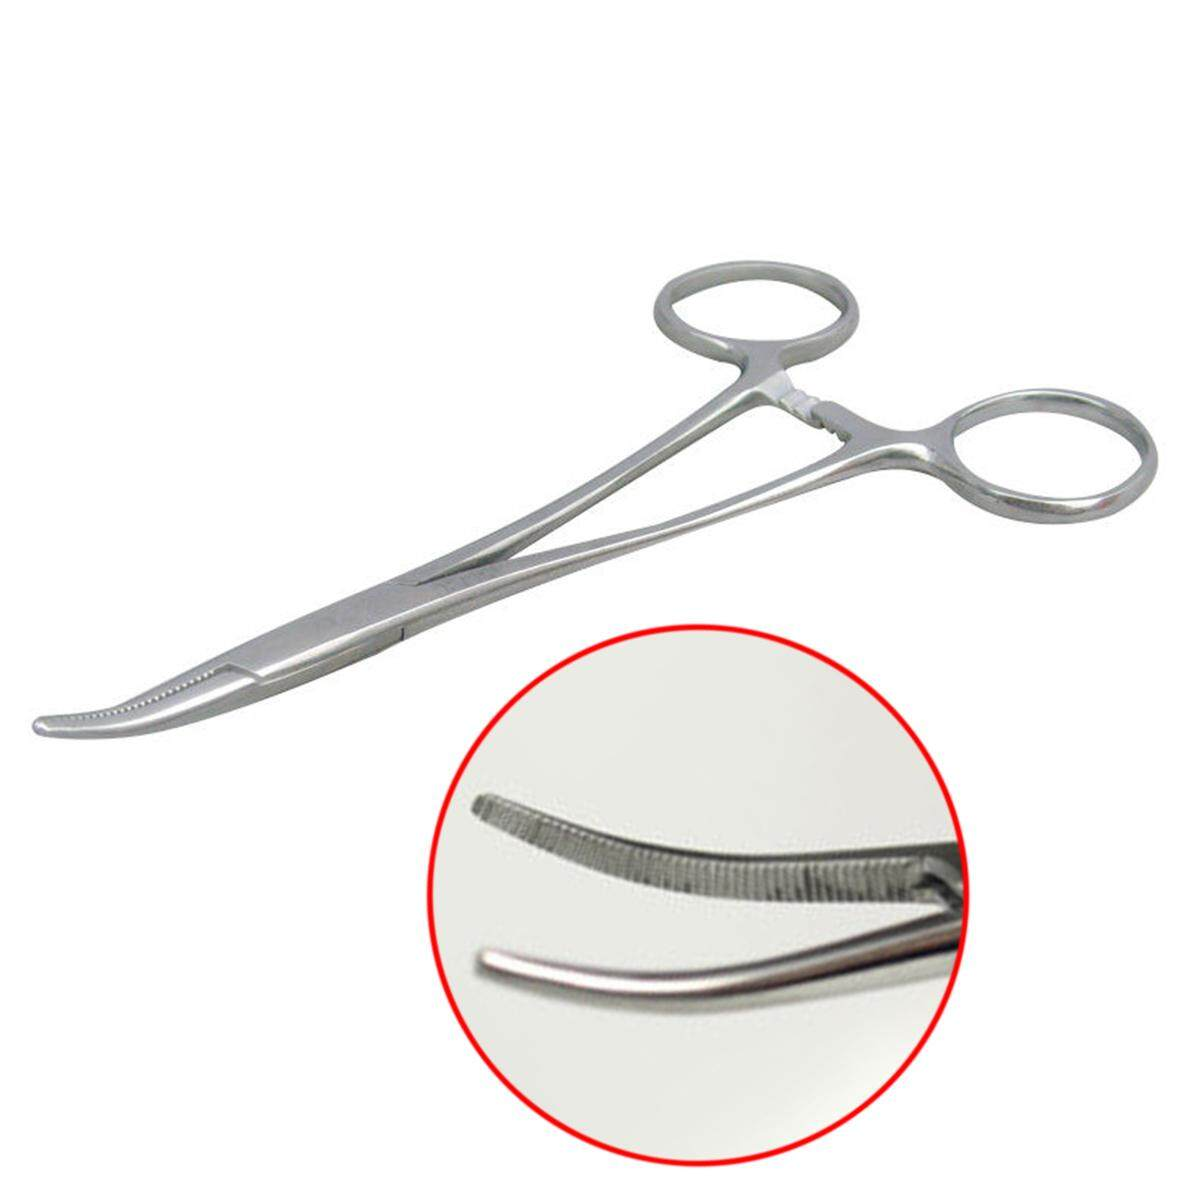 idealhere New 12.5cm Stainless Steel Fishing Curved Tip Hemostat Locking Clamps Forceps